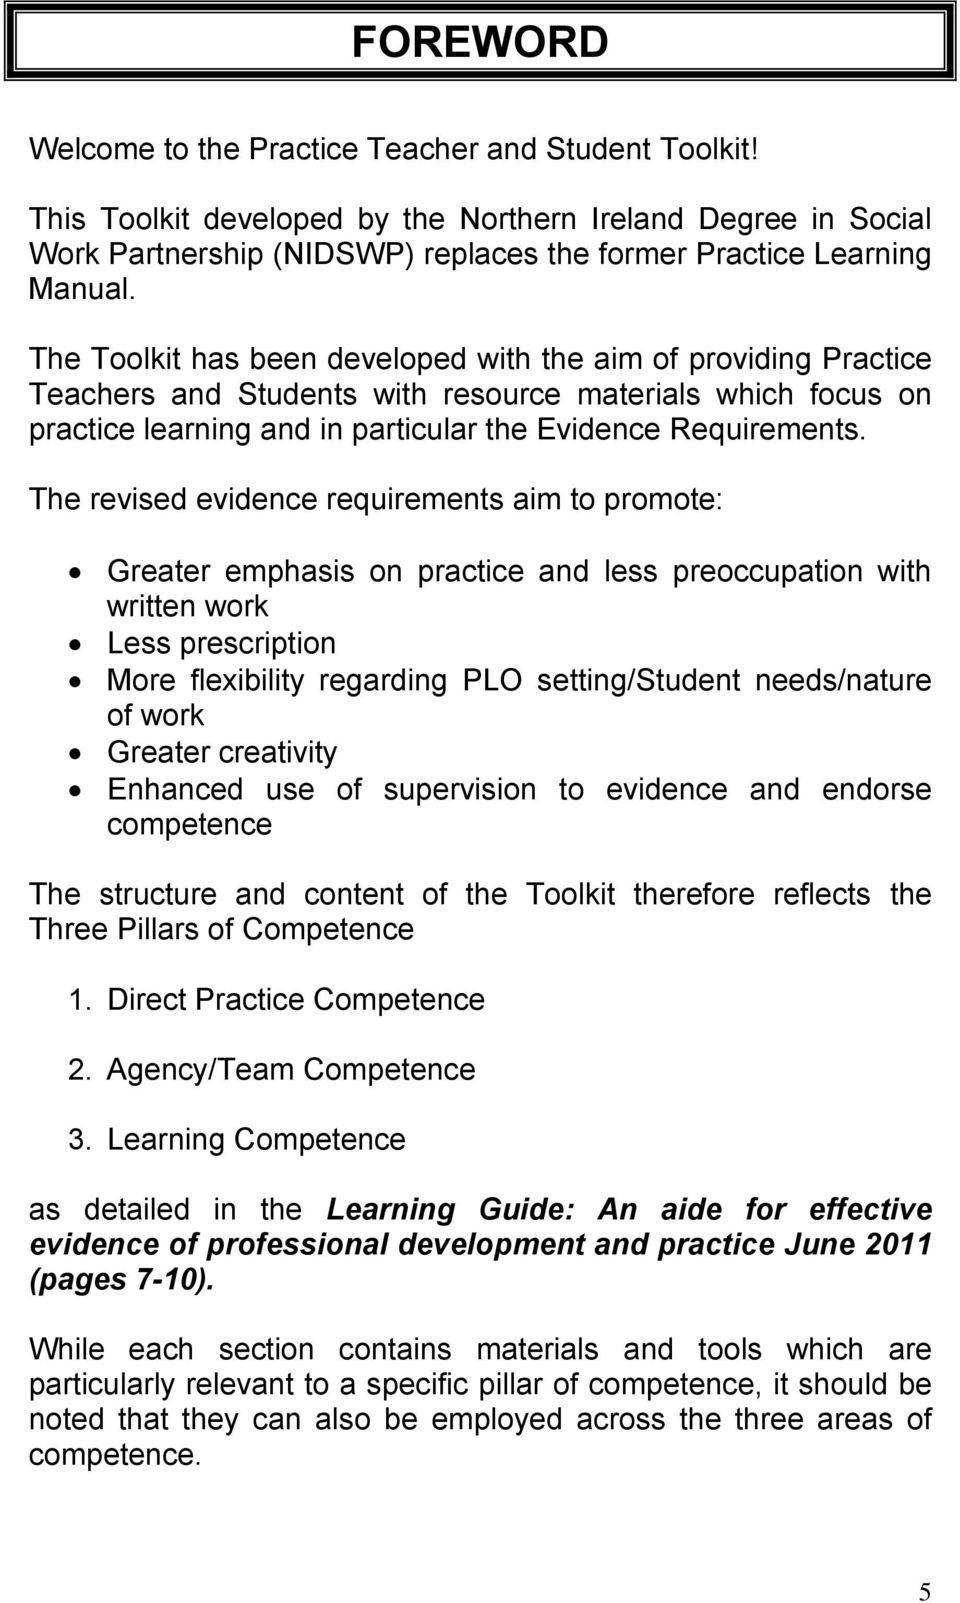 The revised evidence requirements aim to promote: Greater emphasis on practice and less preoccupation with written work Less prescription More flexibility regarding PLO setting/student needs/nature